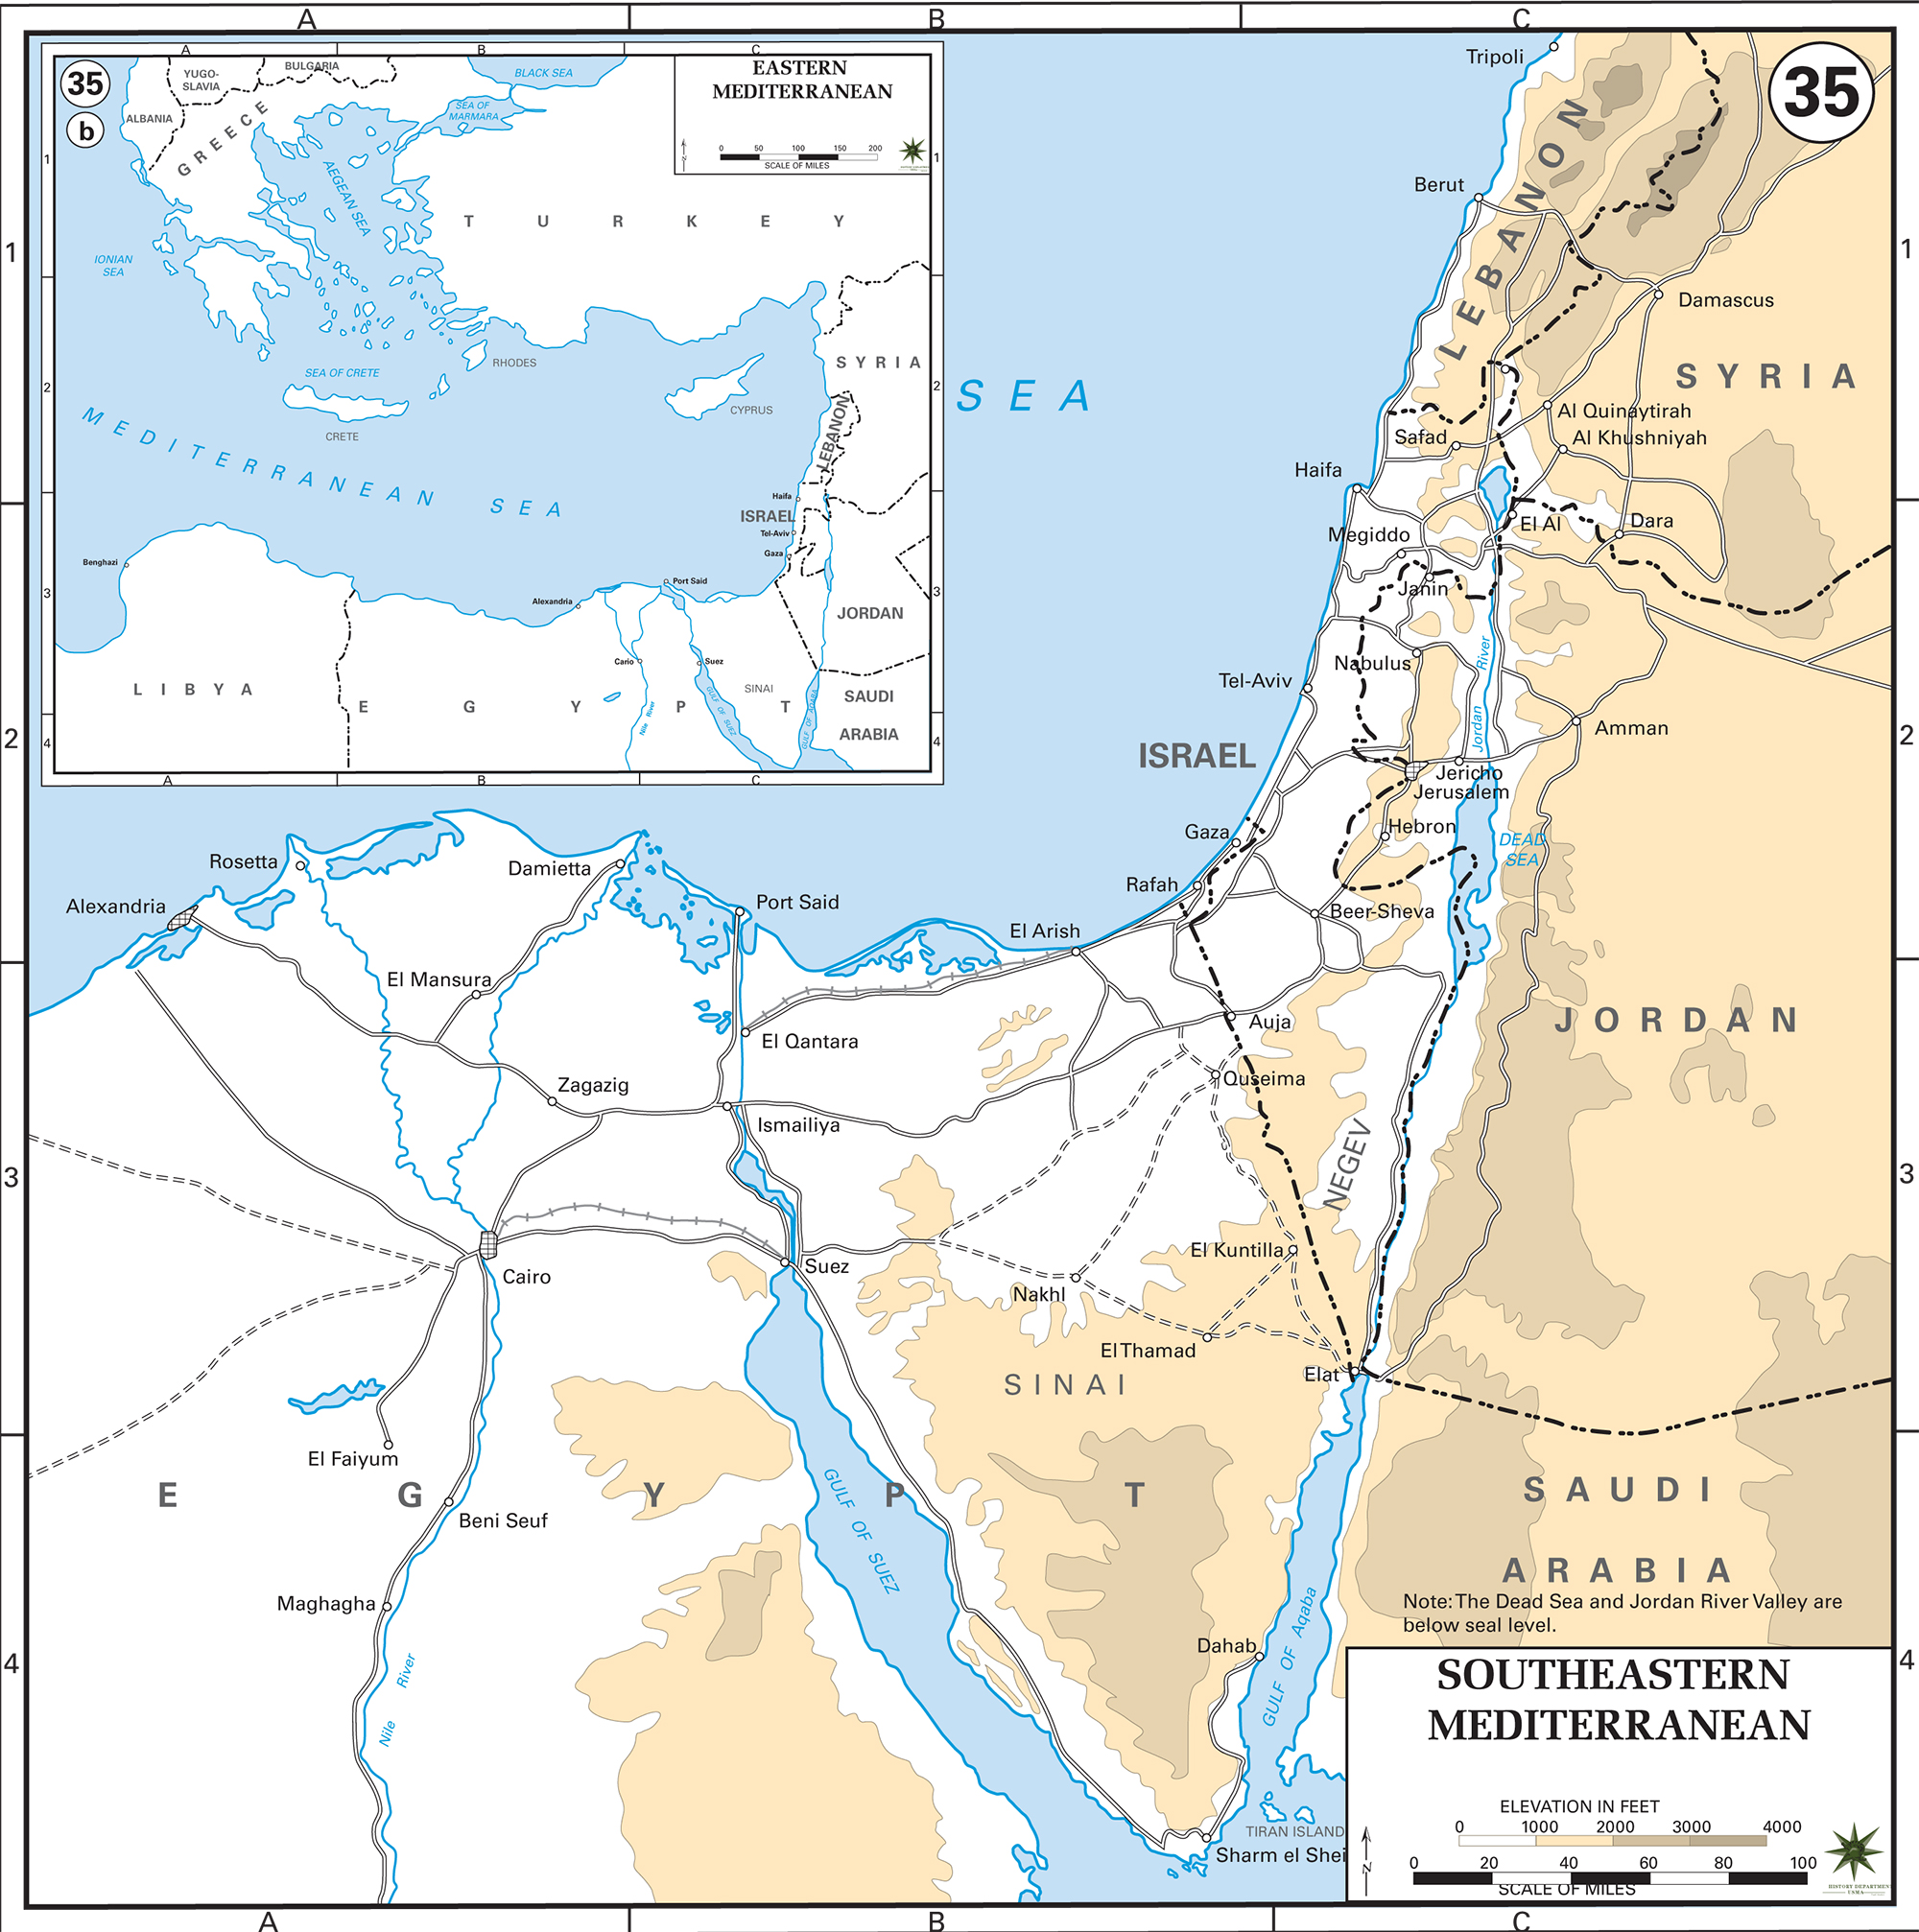 Map Of The Southeastern Mediterranean Countries - Map of egypt elevation